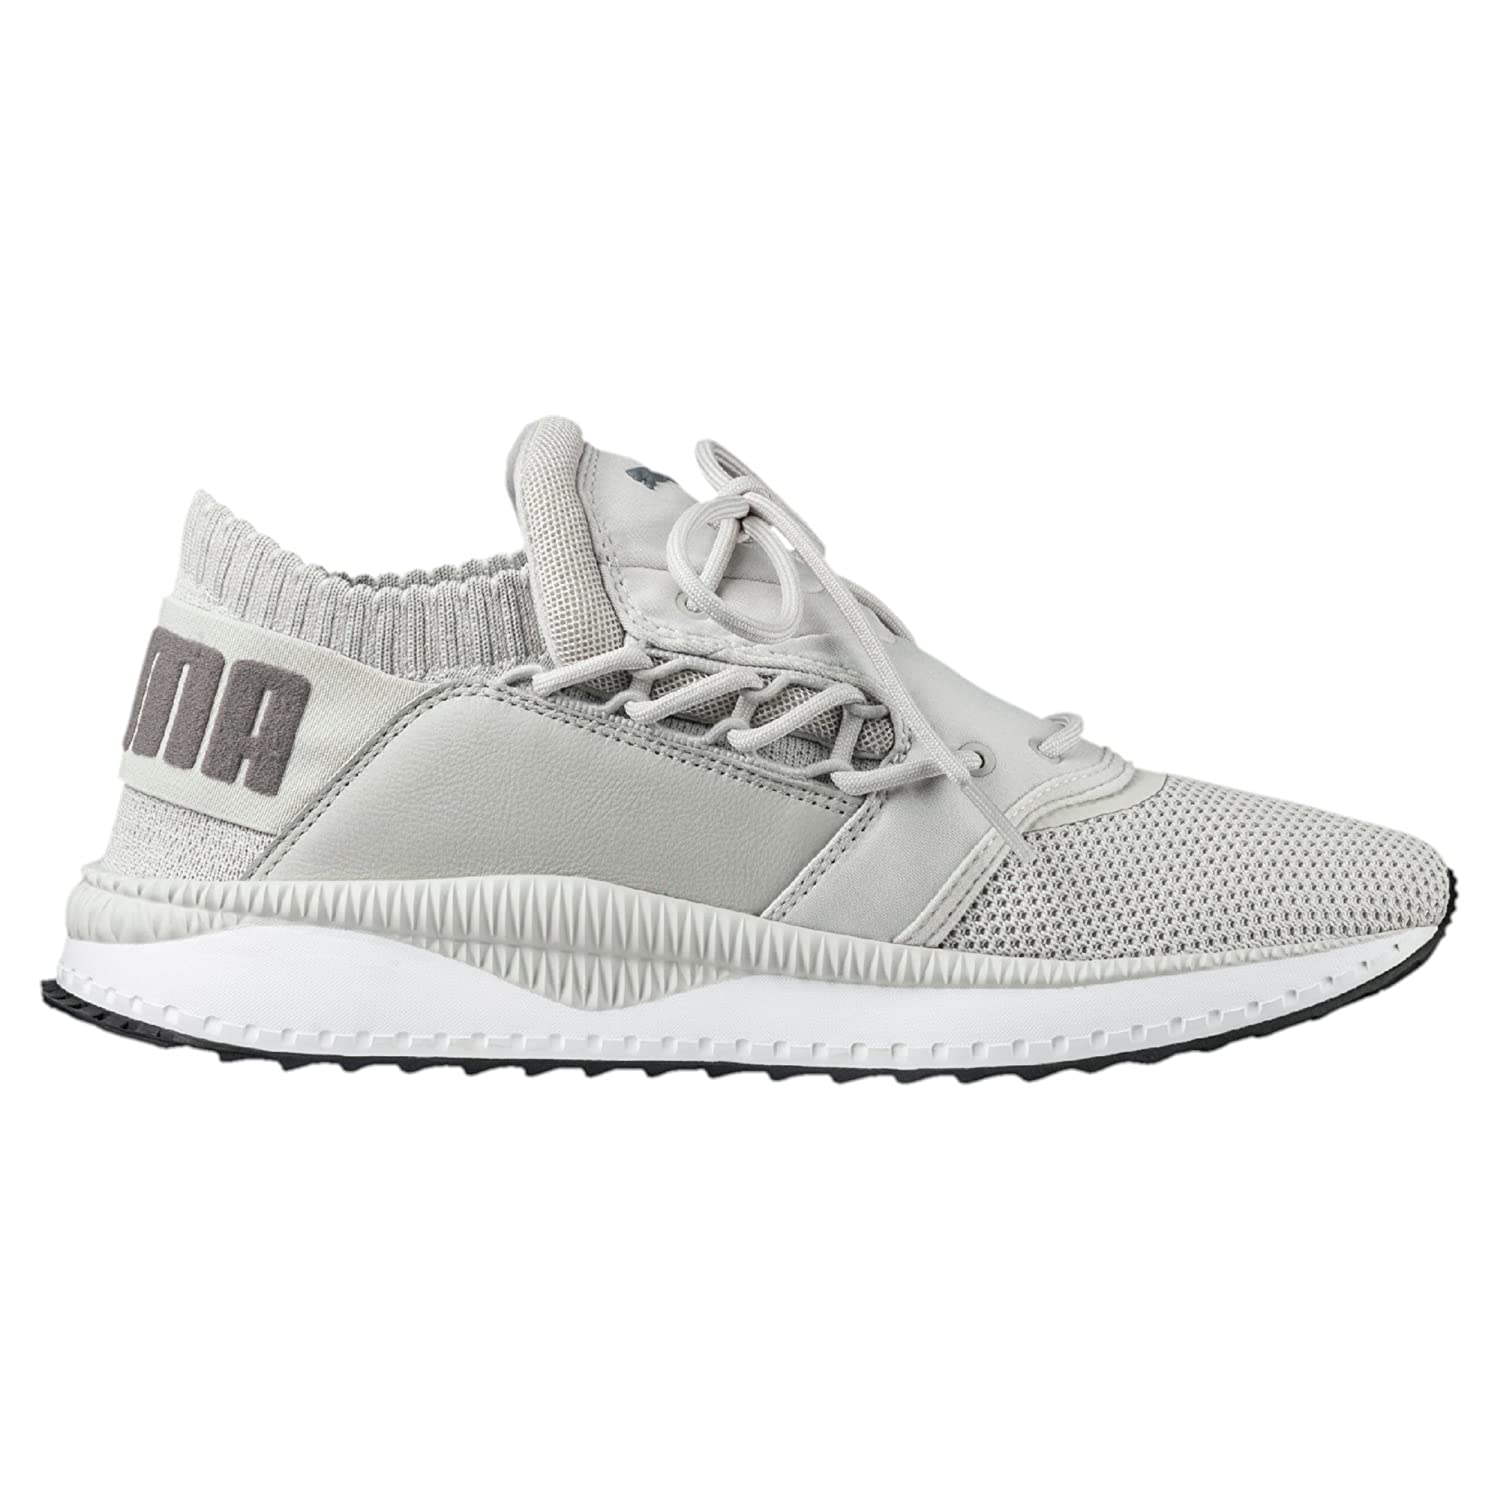 27537f0b5843 Puma Men s Tsugi Shinsei Grey Violet- White Sneakers - 9 UK India (43 EU)   Buy Online at Low Prices in India - Amazon.in